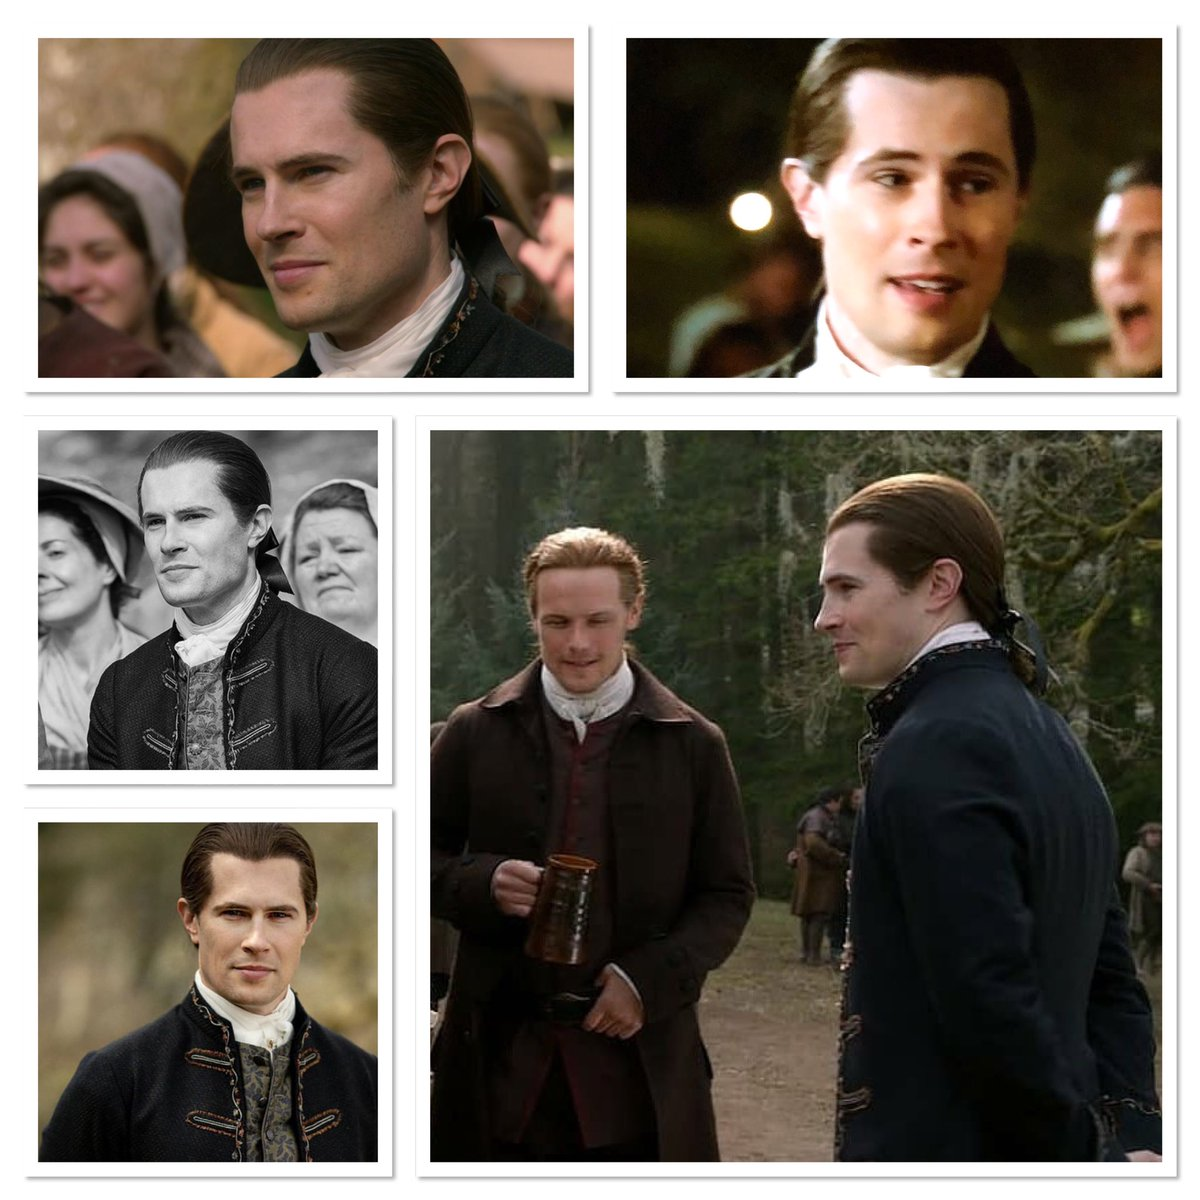 💕❤️💕Happy Tuesday Sassenachs 💕❤️💕Wishing Everyone a Beautiful Day and Evening 🌺🐝🌸🌷🌴🐥🦋🦄🐞🐛🙉🐷🐶🐹🌺#davidverry #lordjohngrey #outlander #jamesfraser #season5